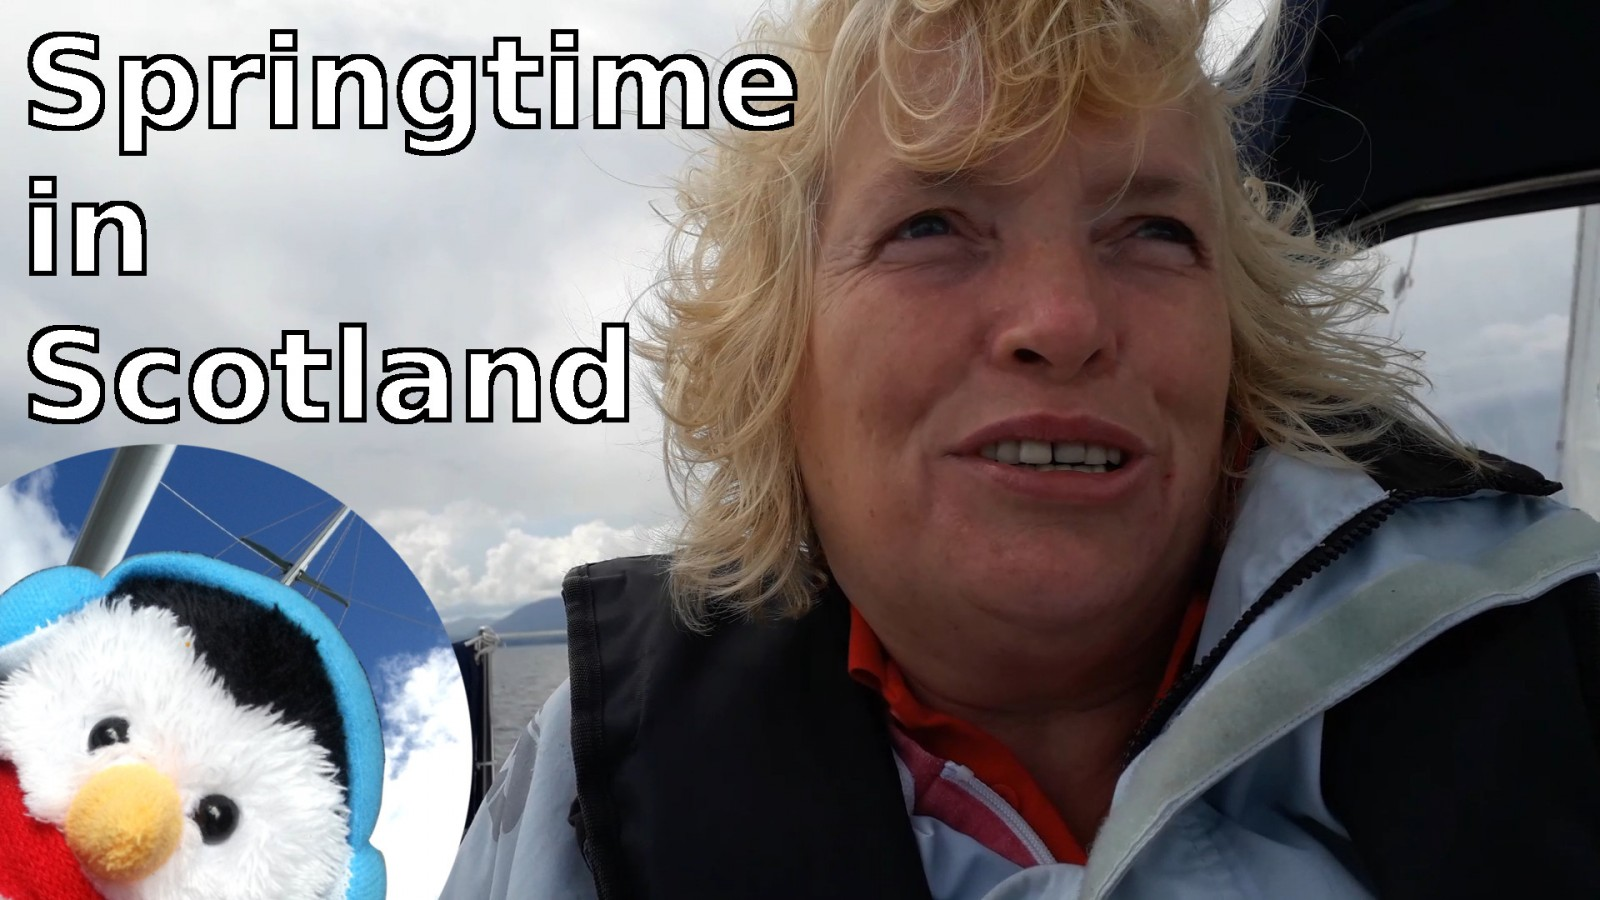 Watch our 'Springtime in Scotland' video and add comments etc